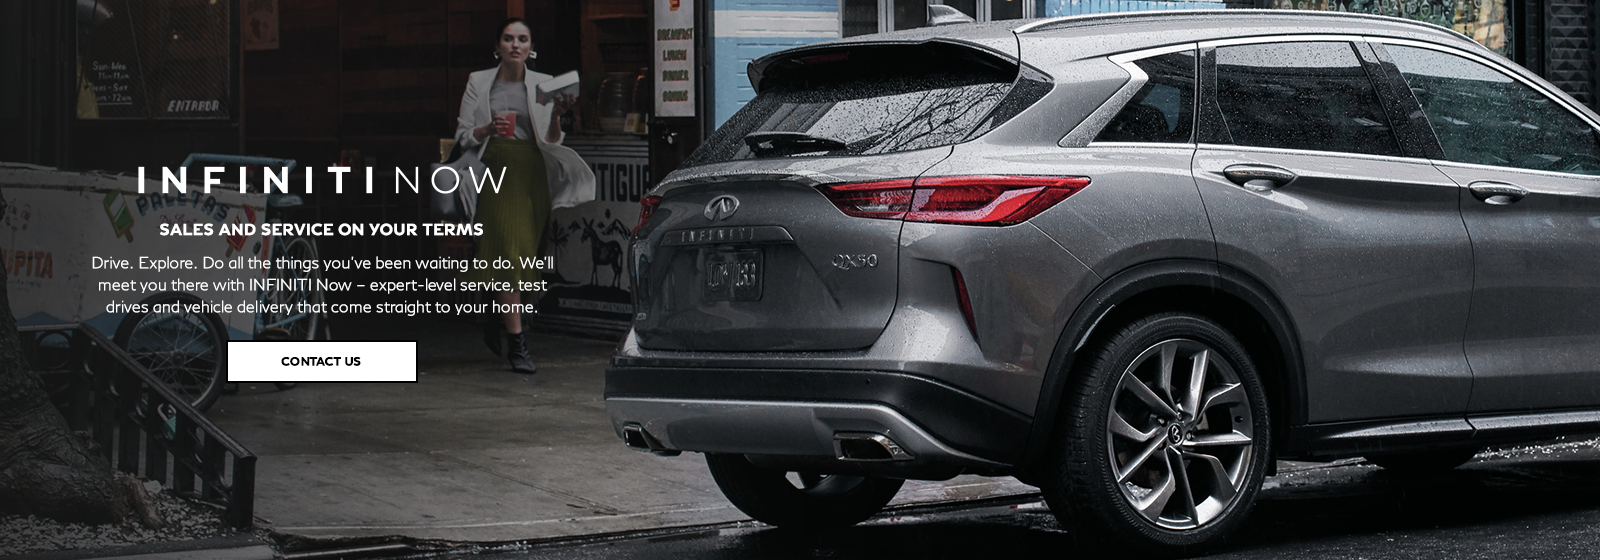 INFINITI Now – Enjoy a full range of retailer offered services all brought to your home. Click to contact us.